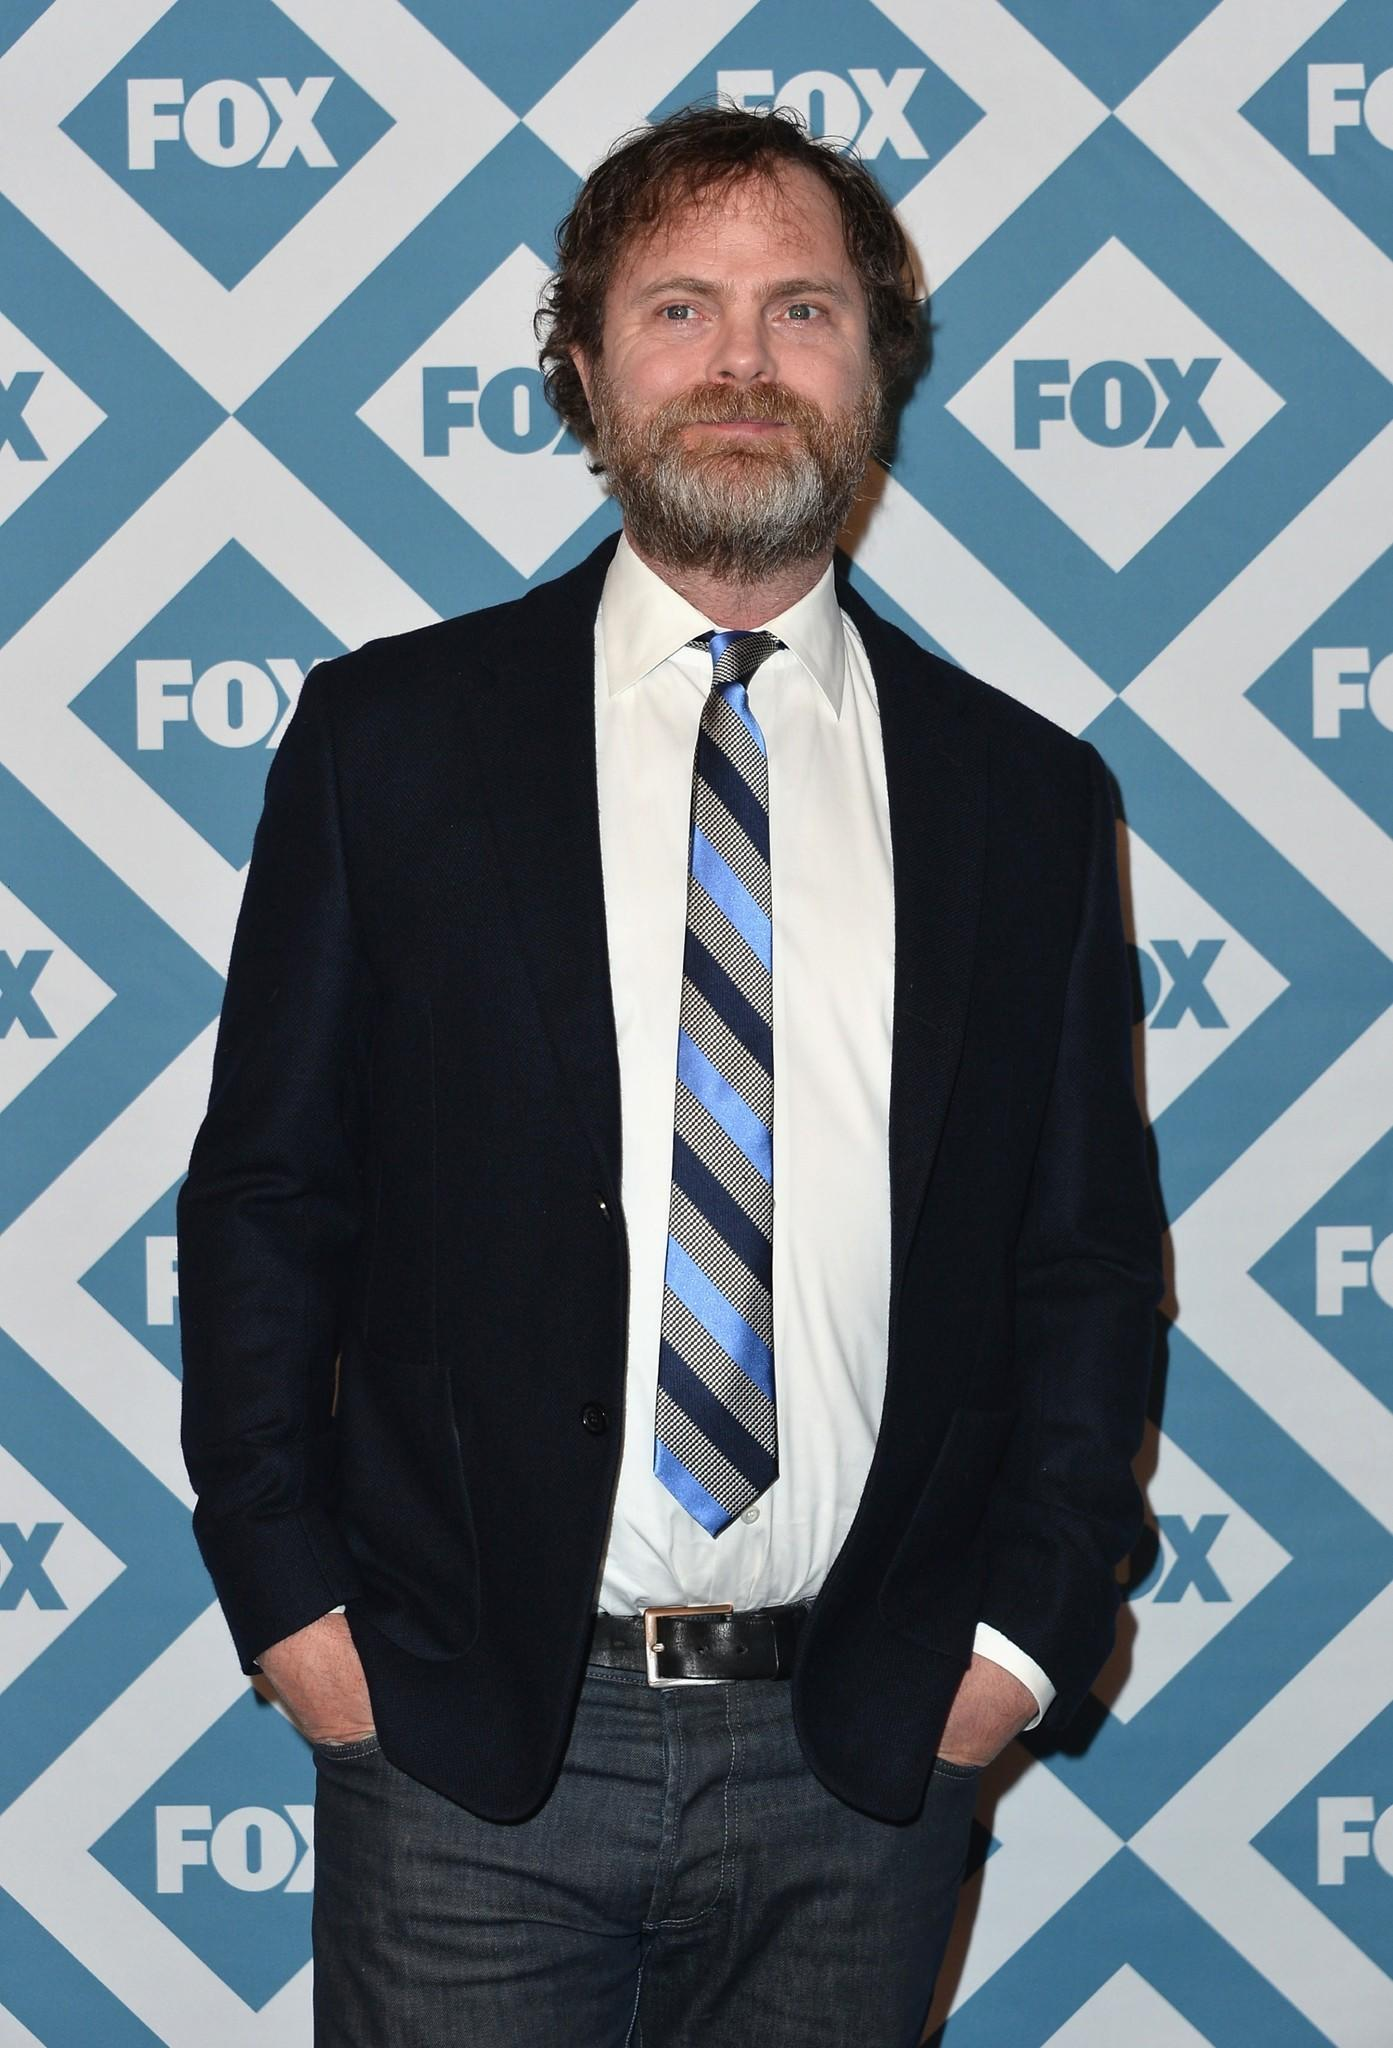 Rainn Wilson turns 48 on Monday, Jan. 20.